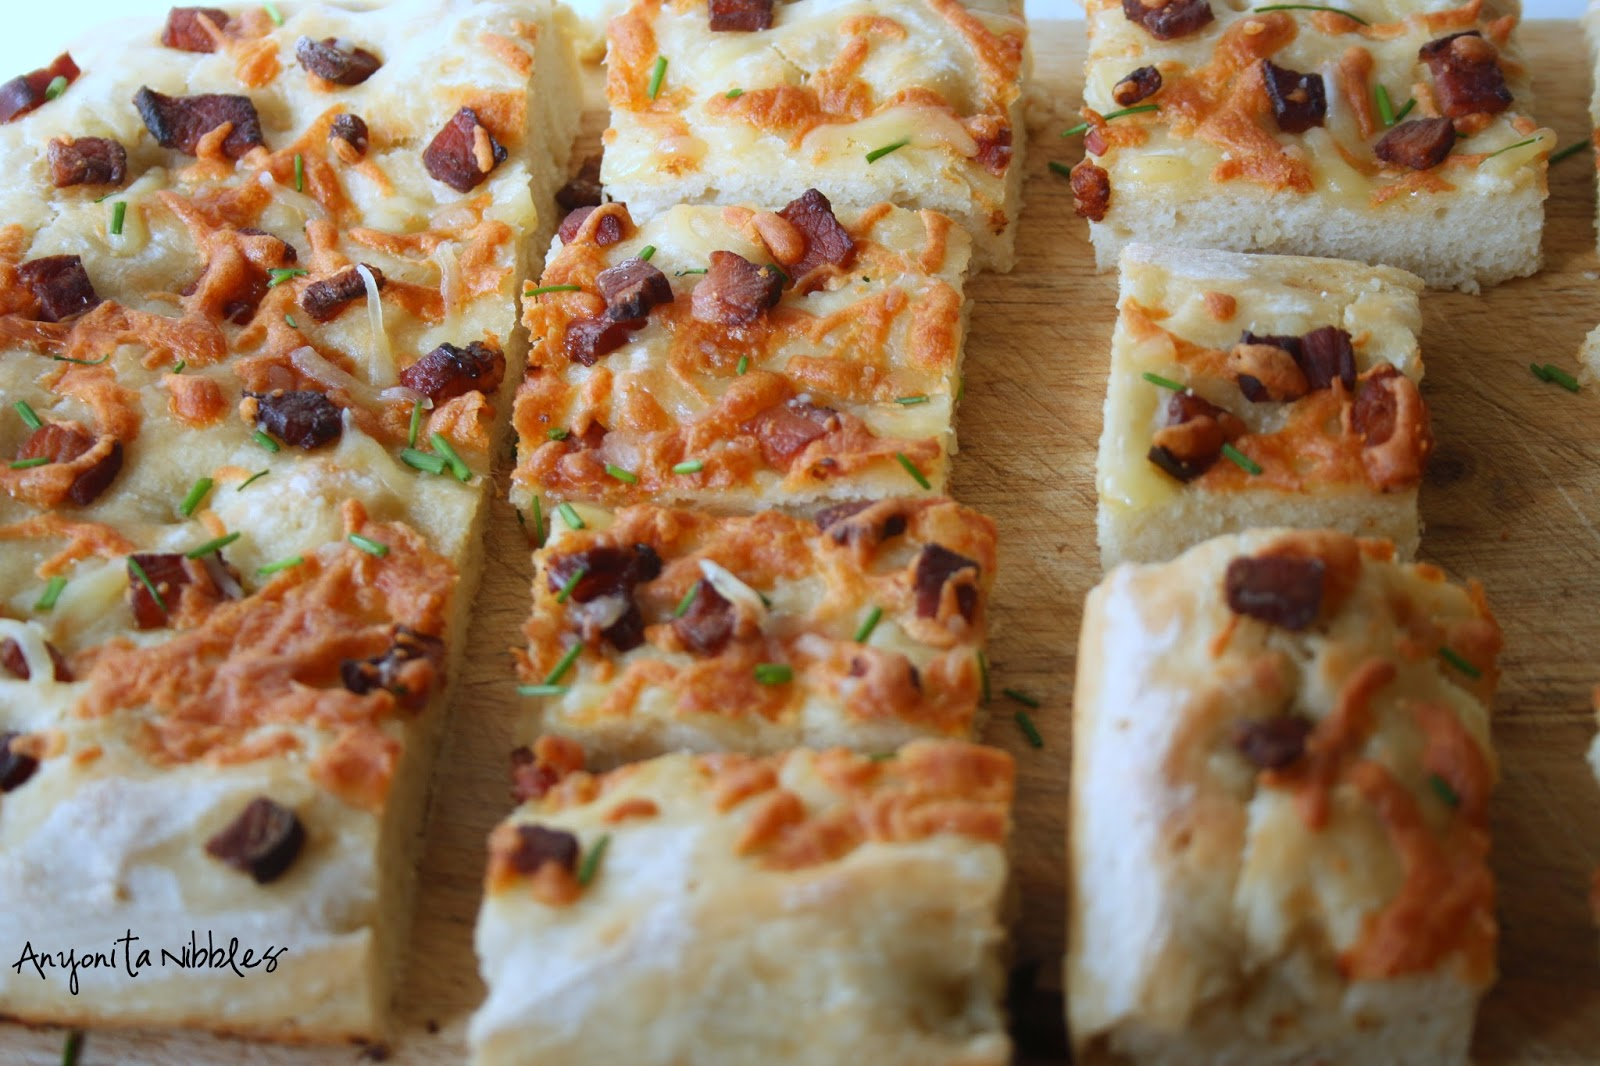 Cheese and bacon potato focaccia with chives from Anyonita Nibbles